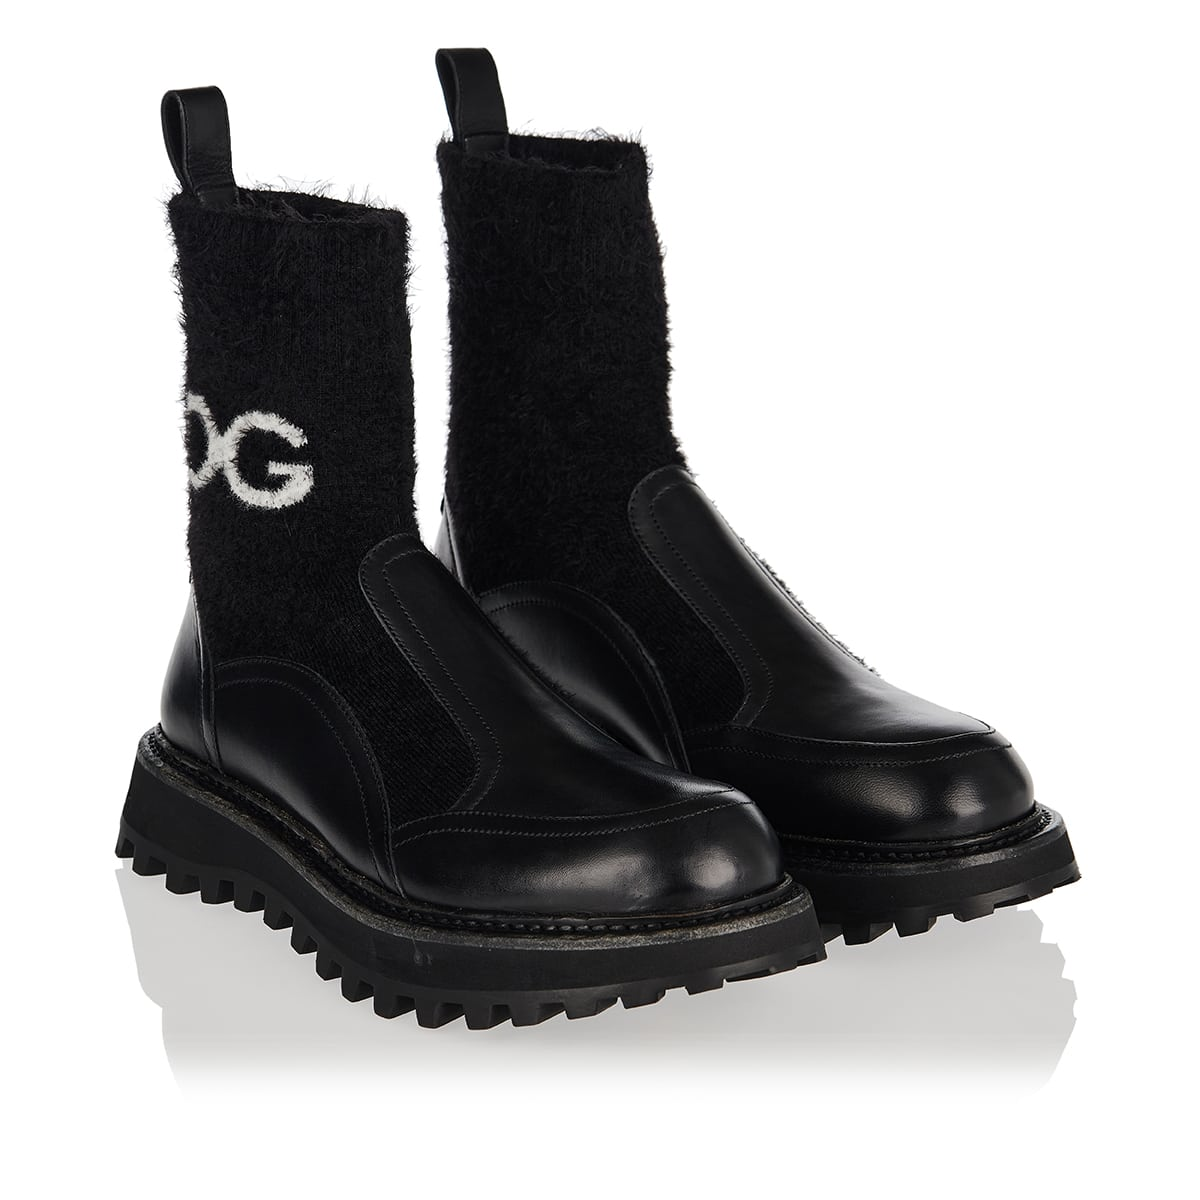 DG knit and leather sock boots